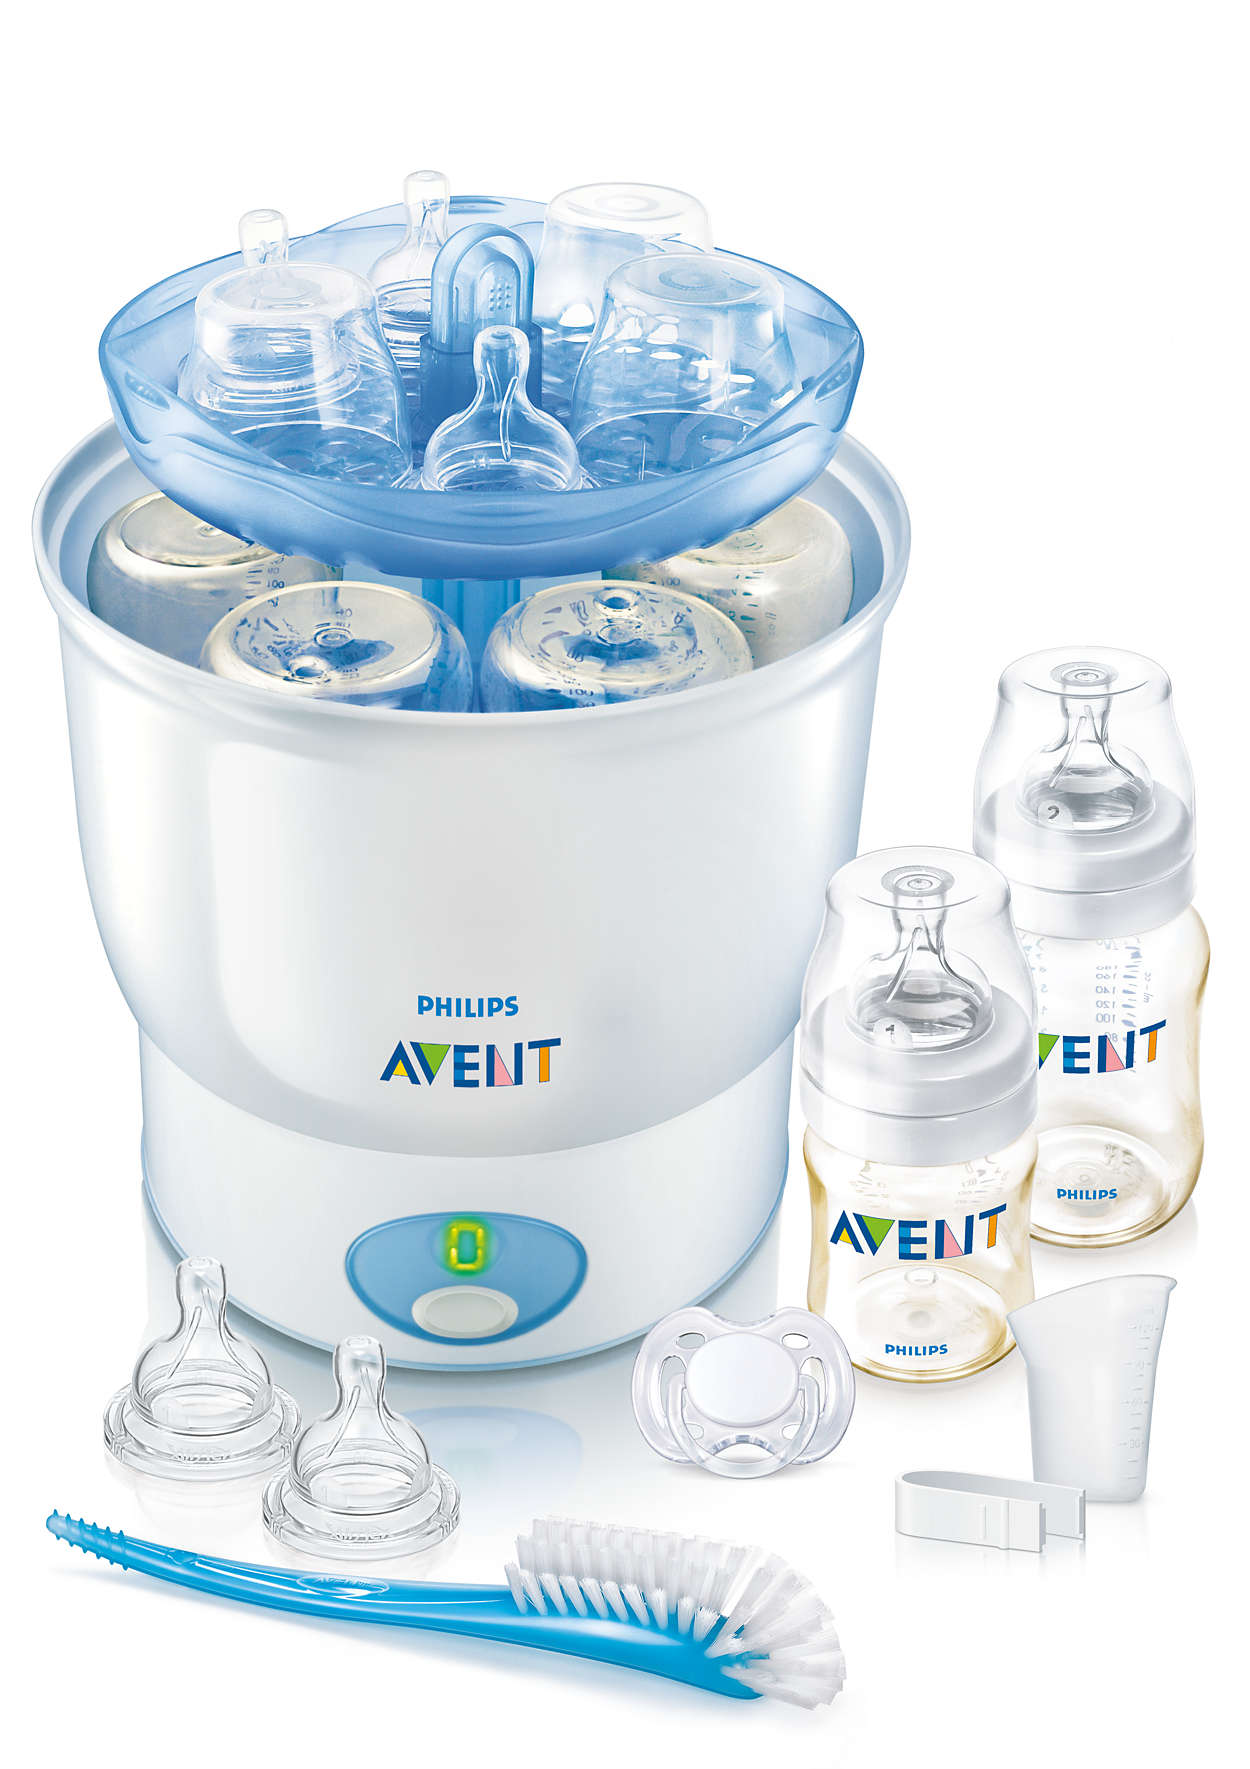 Keeps contents sterile night and day